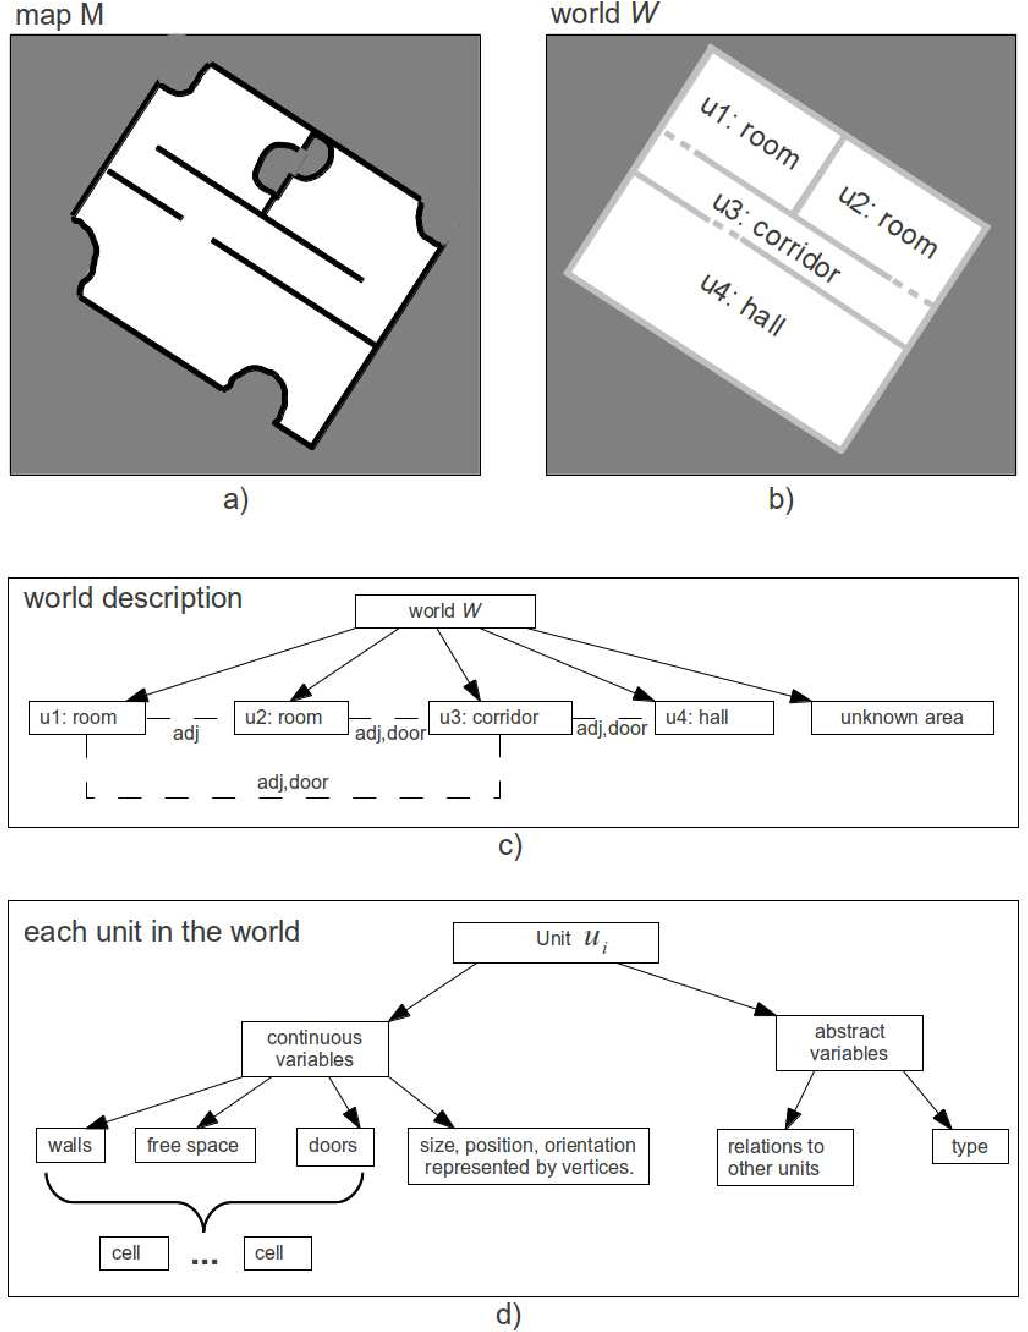 Figure 4 for A Generalizable Knowledge Framework for Semantic Indoor Mapping Based on Markov Logic Networks and Data Driven MCMC